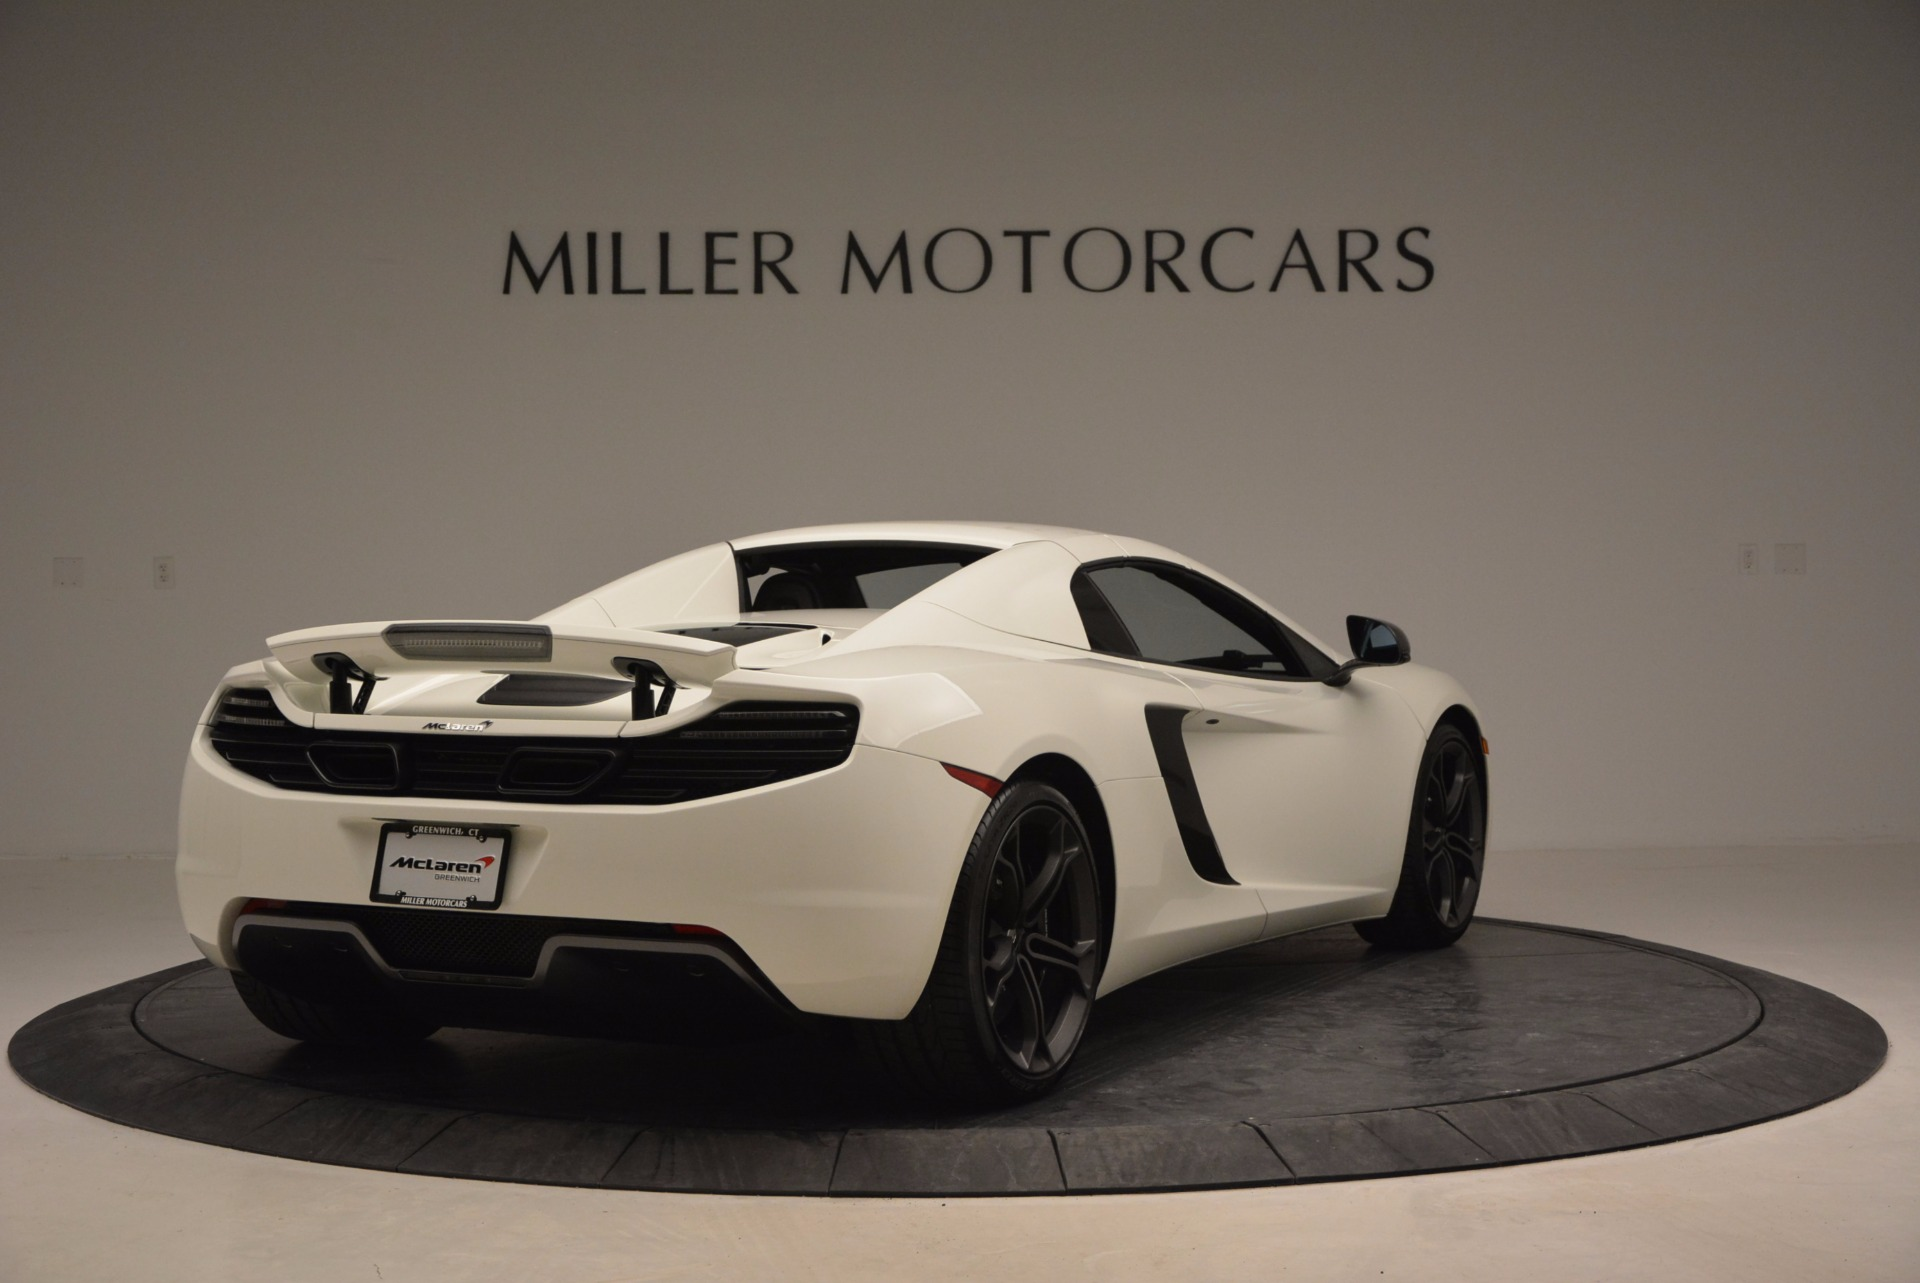 Used 2014 McLaren MP4-12C Spider For Sale In Greenwich, CT. Alfa Romeo of Greenwich, 3136 908_p18